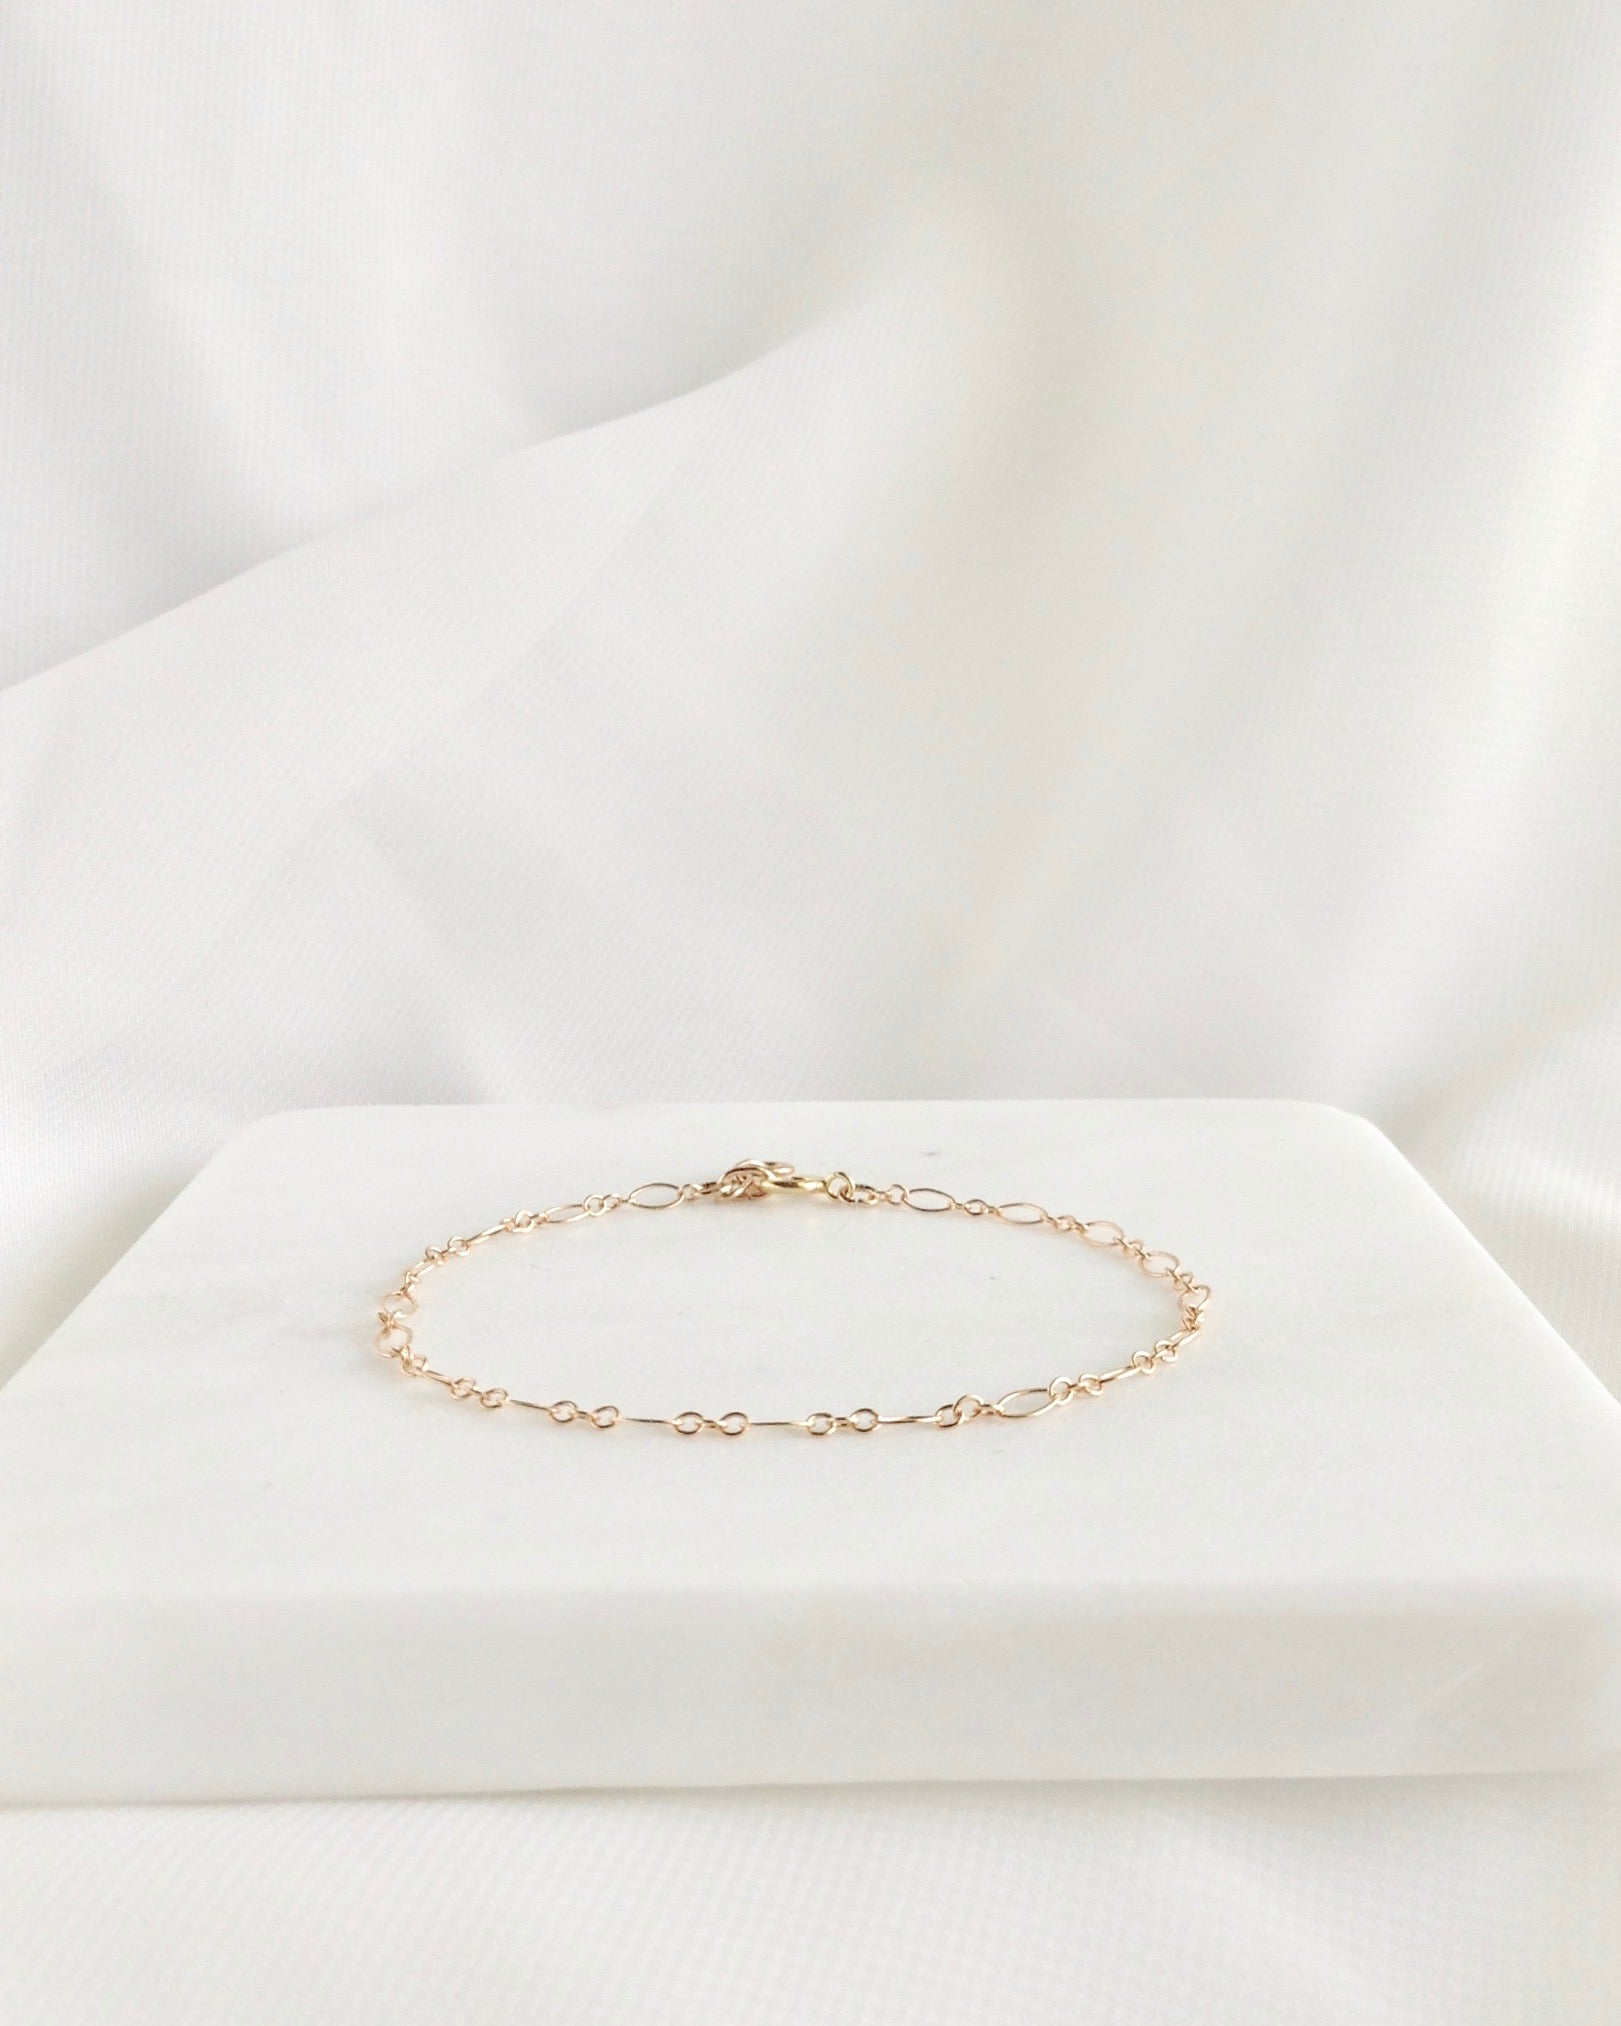 Elegant Everyday Chain Bracelet in Gold Filled or Sterling Silver | IB Jewelry